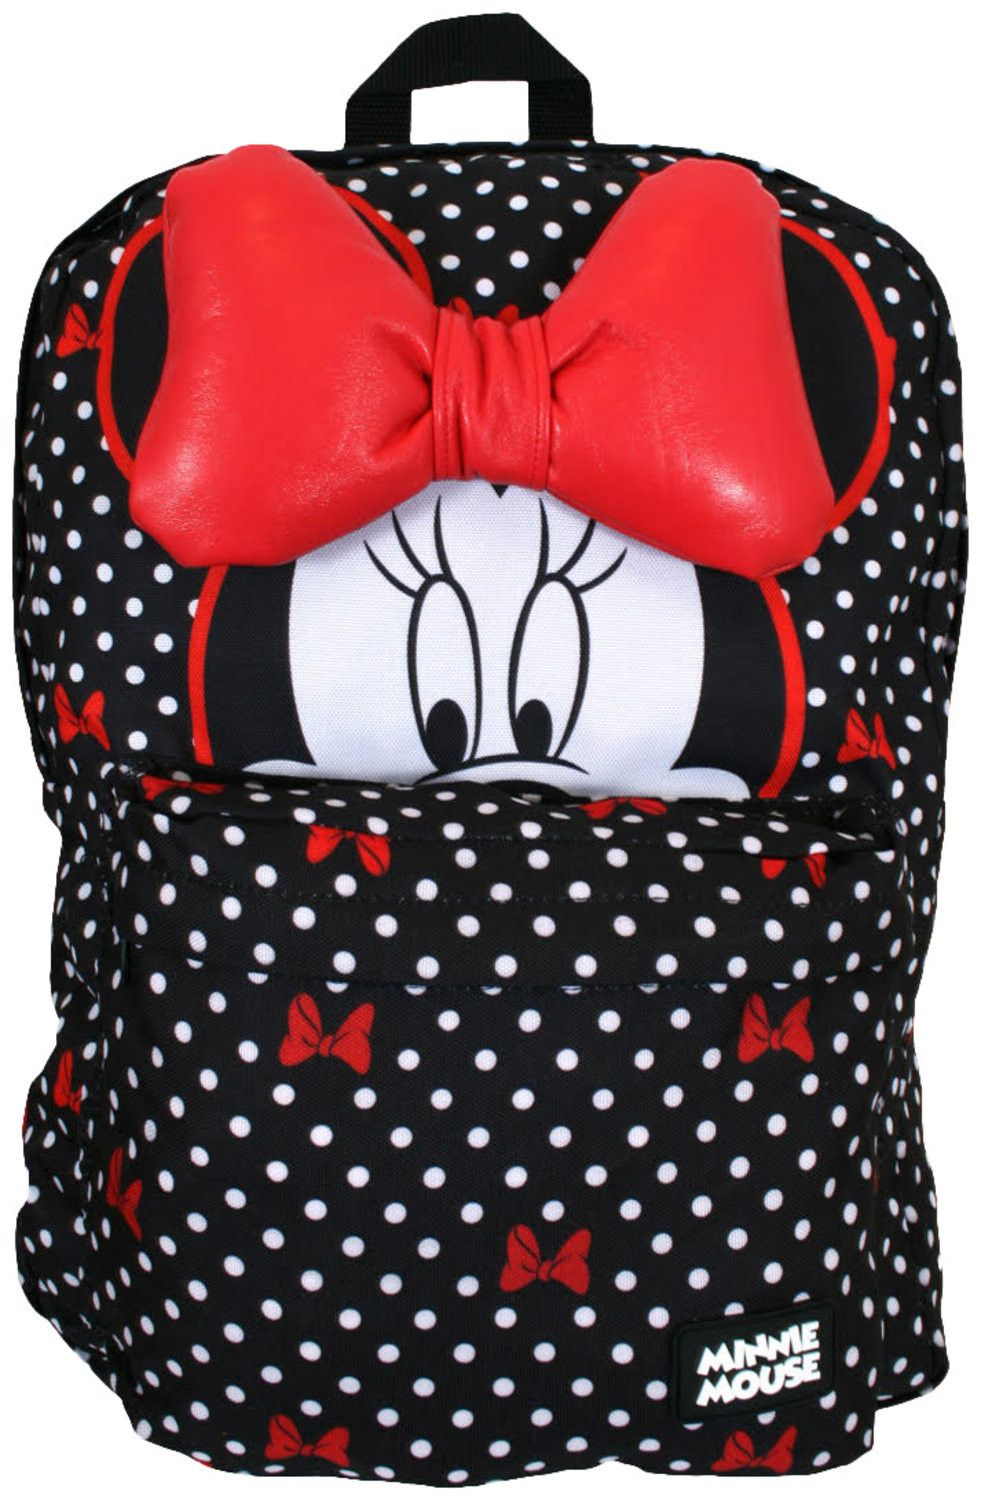 9c95f9e13ff Minnie Mouse Bow Backpack  Disney Mnnie Mouse Backpack